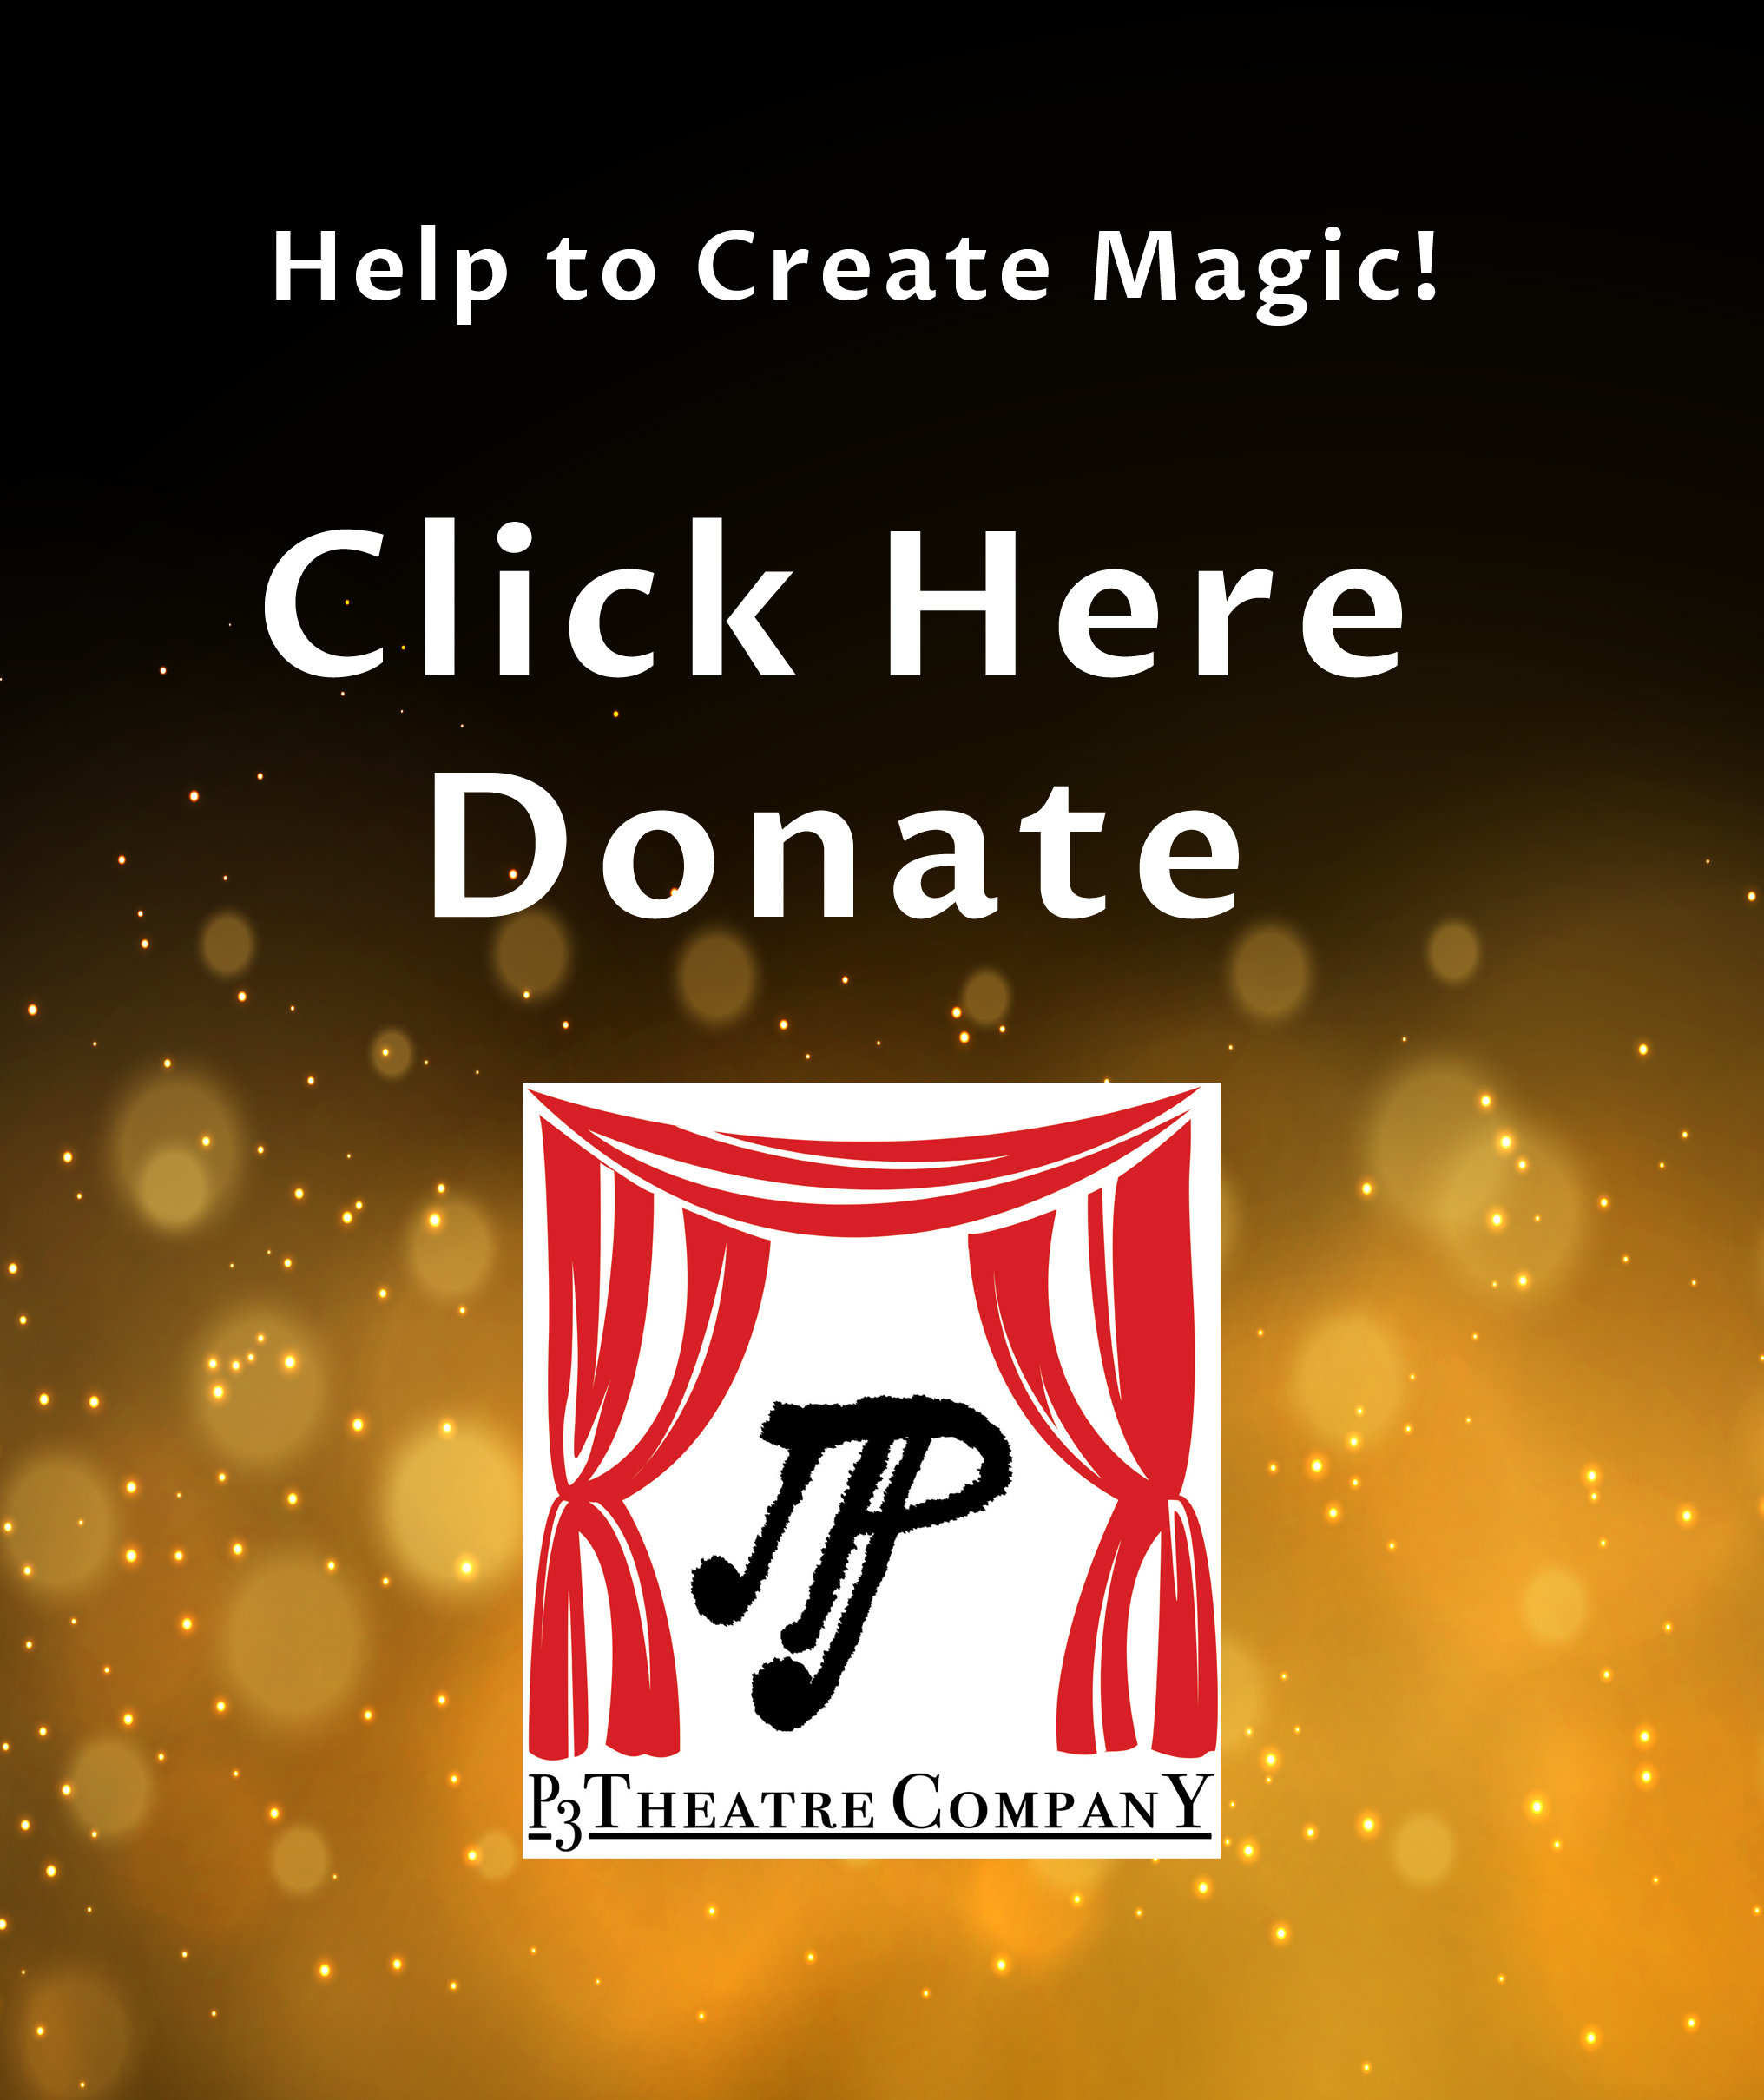 Donate to P3 Theatre